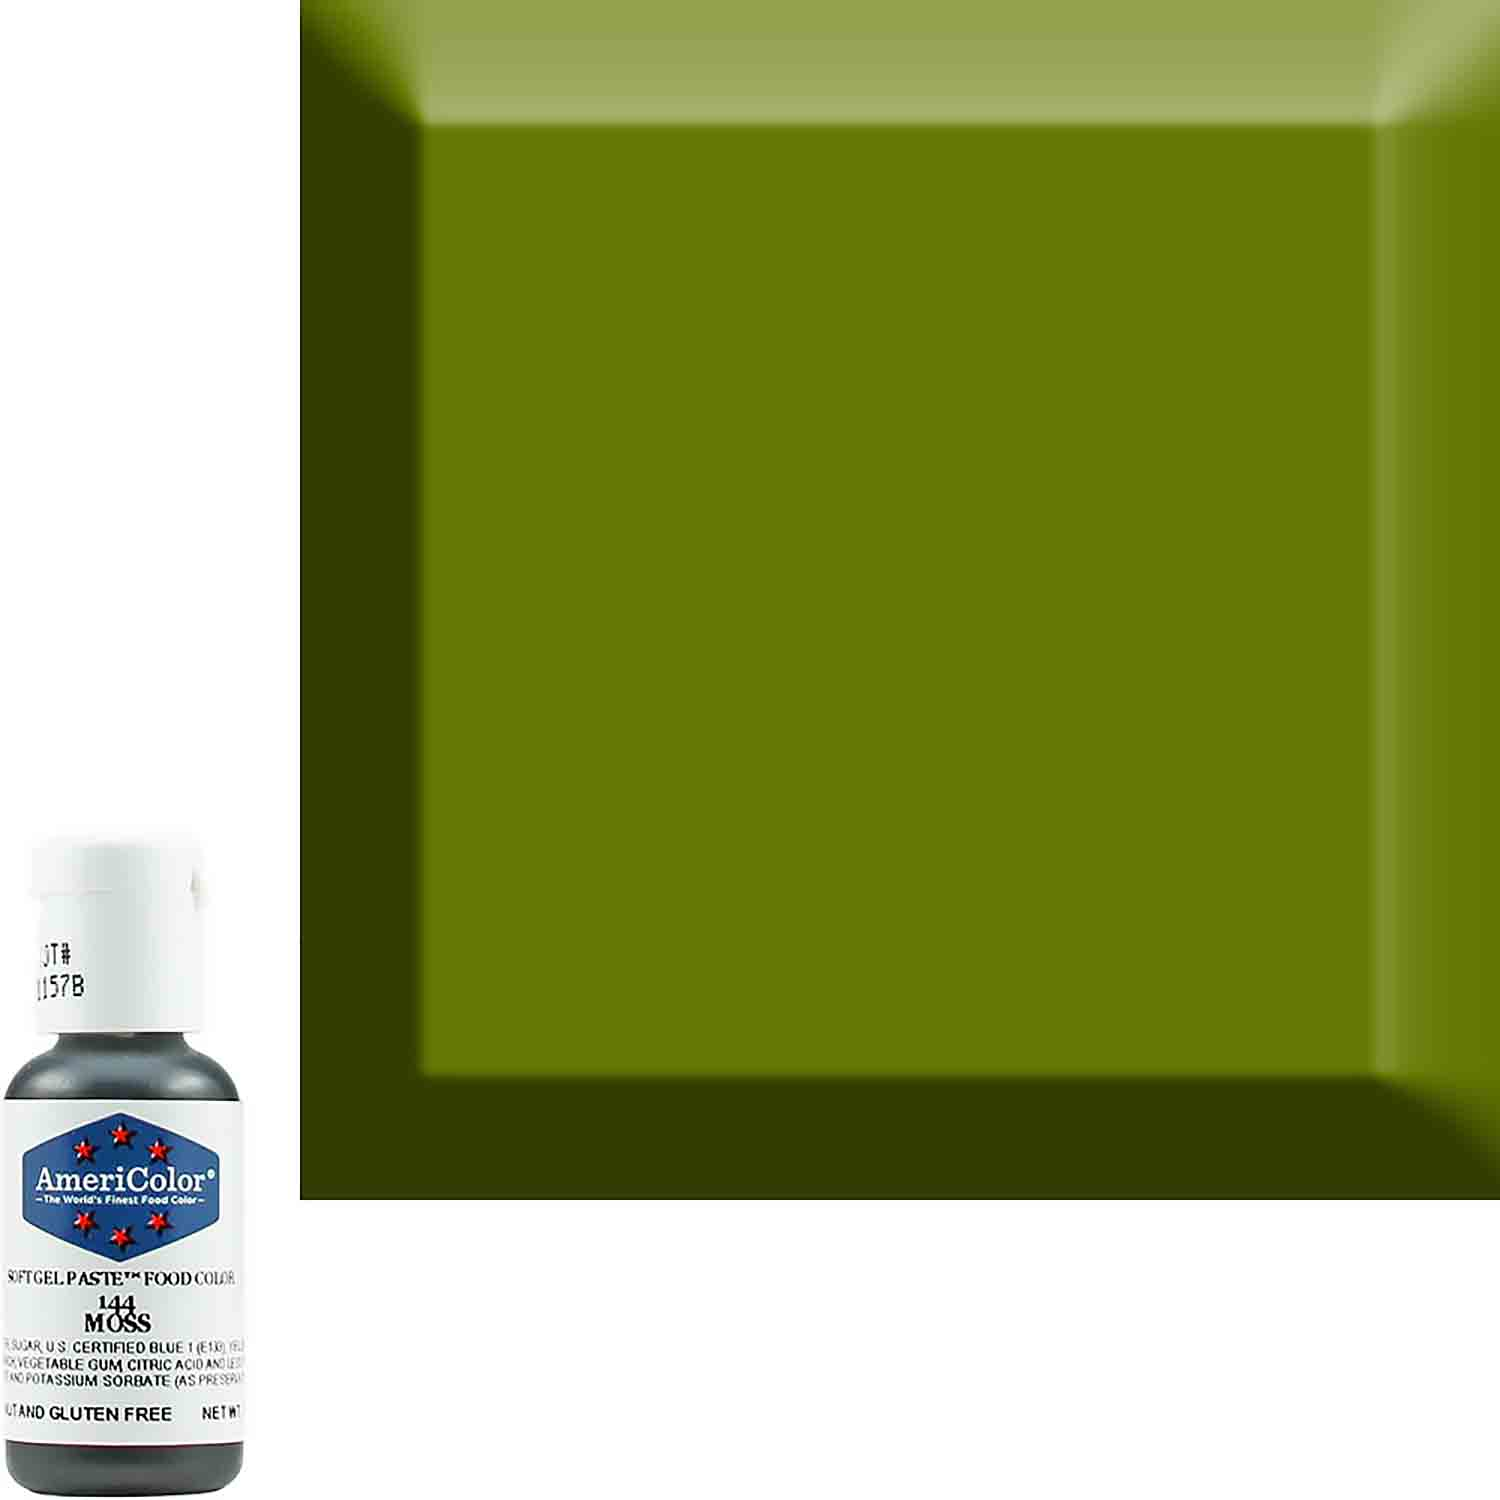 Moss AmeriColor® Soft Gel Paste™ Food Color